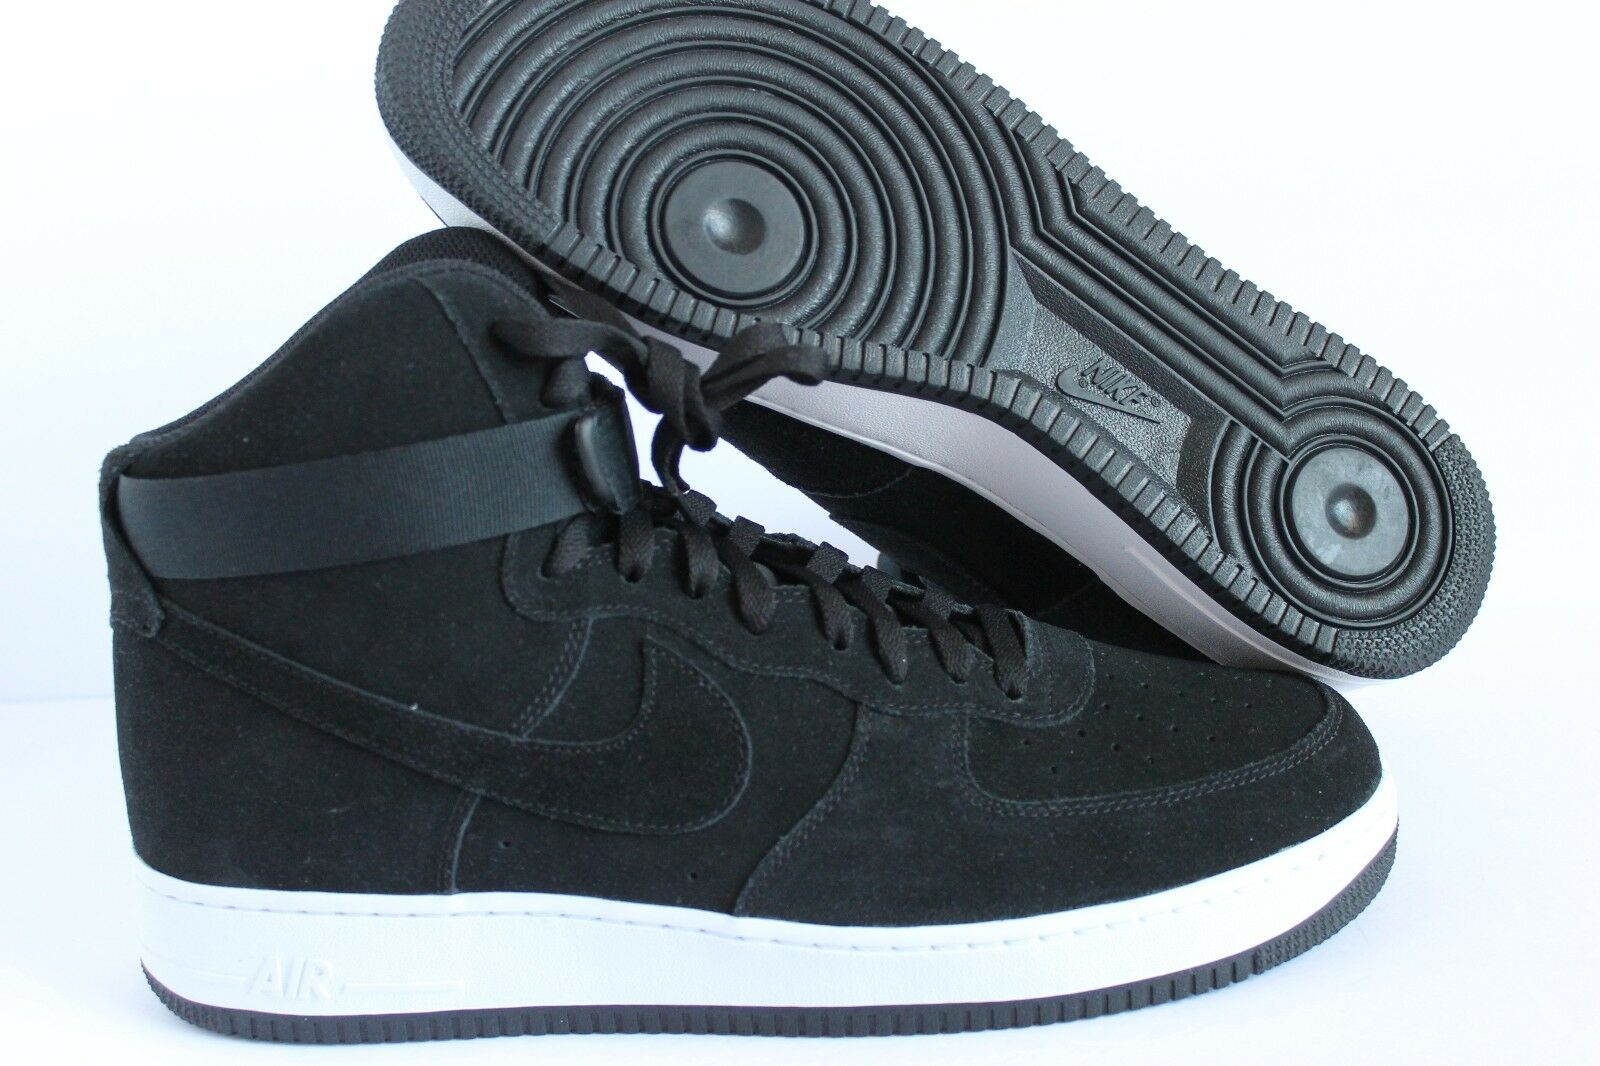 NIKE AIR FORCE 1 HIGH 07 BLACK/BLACK-WHITE Price reduction Brand discount